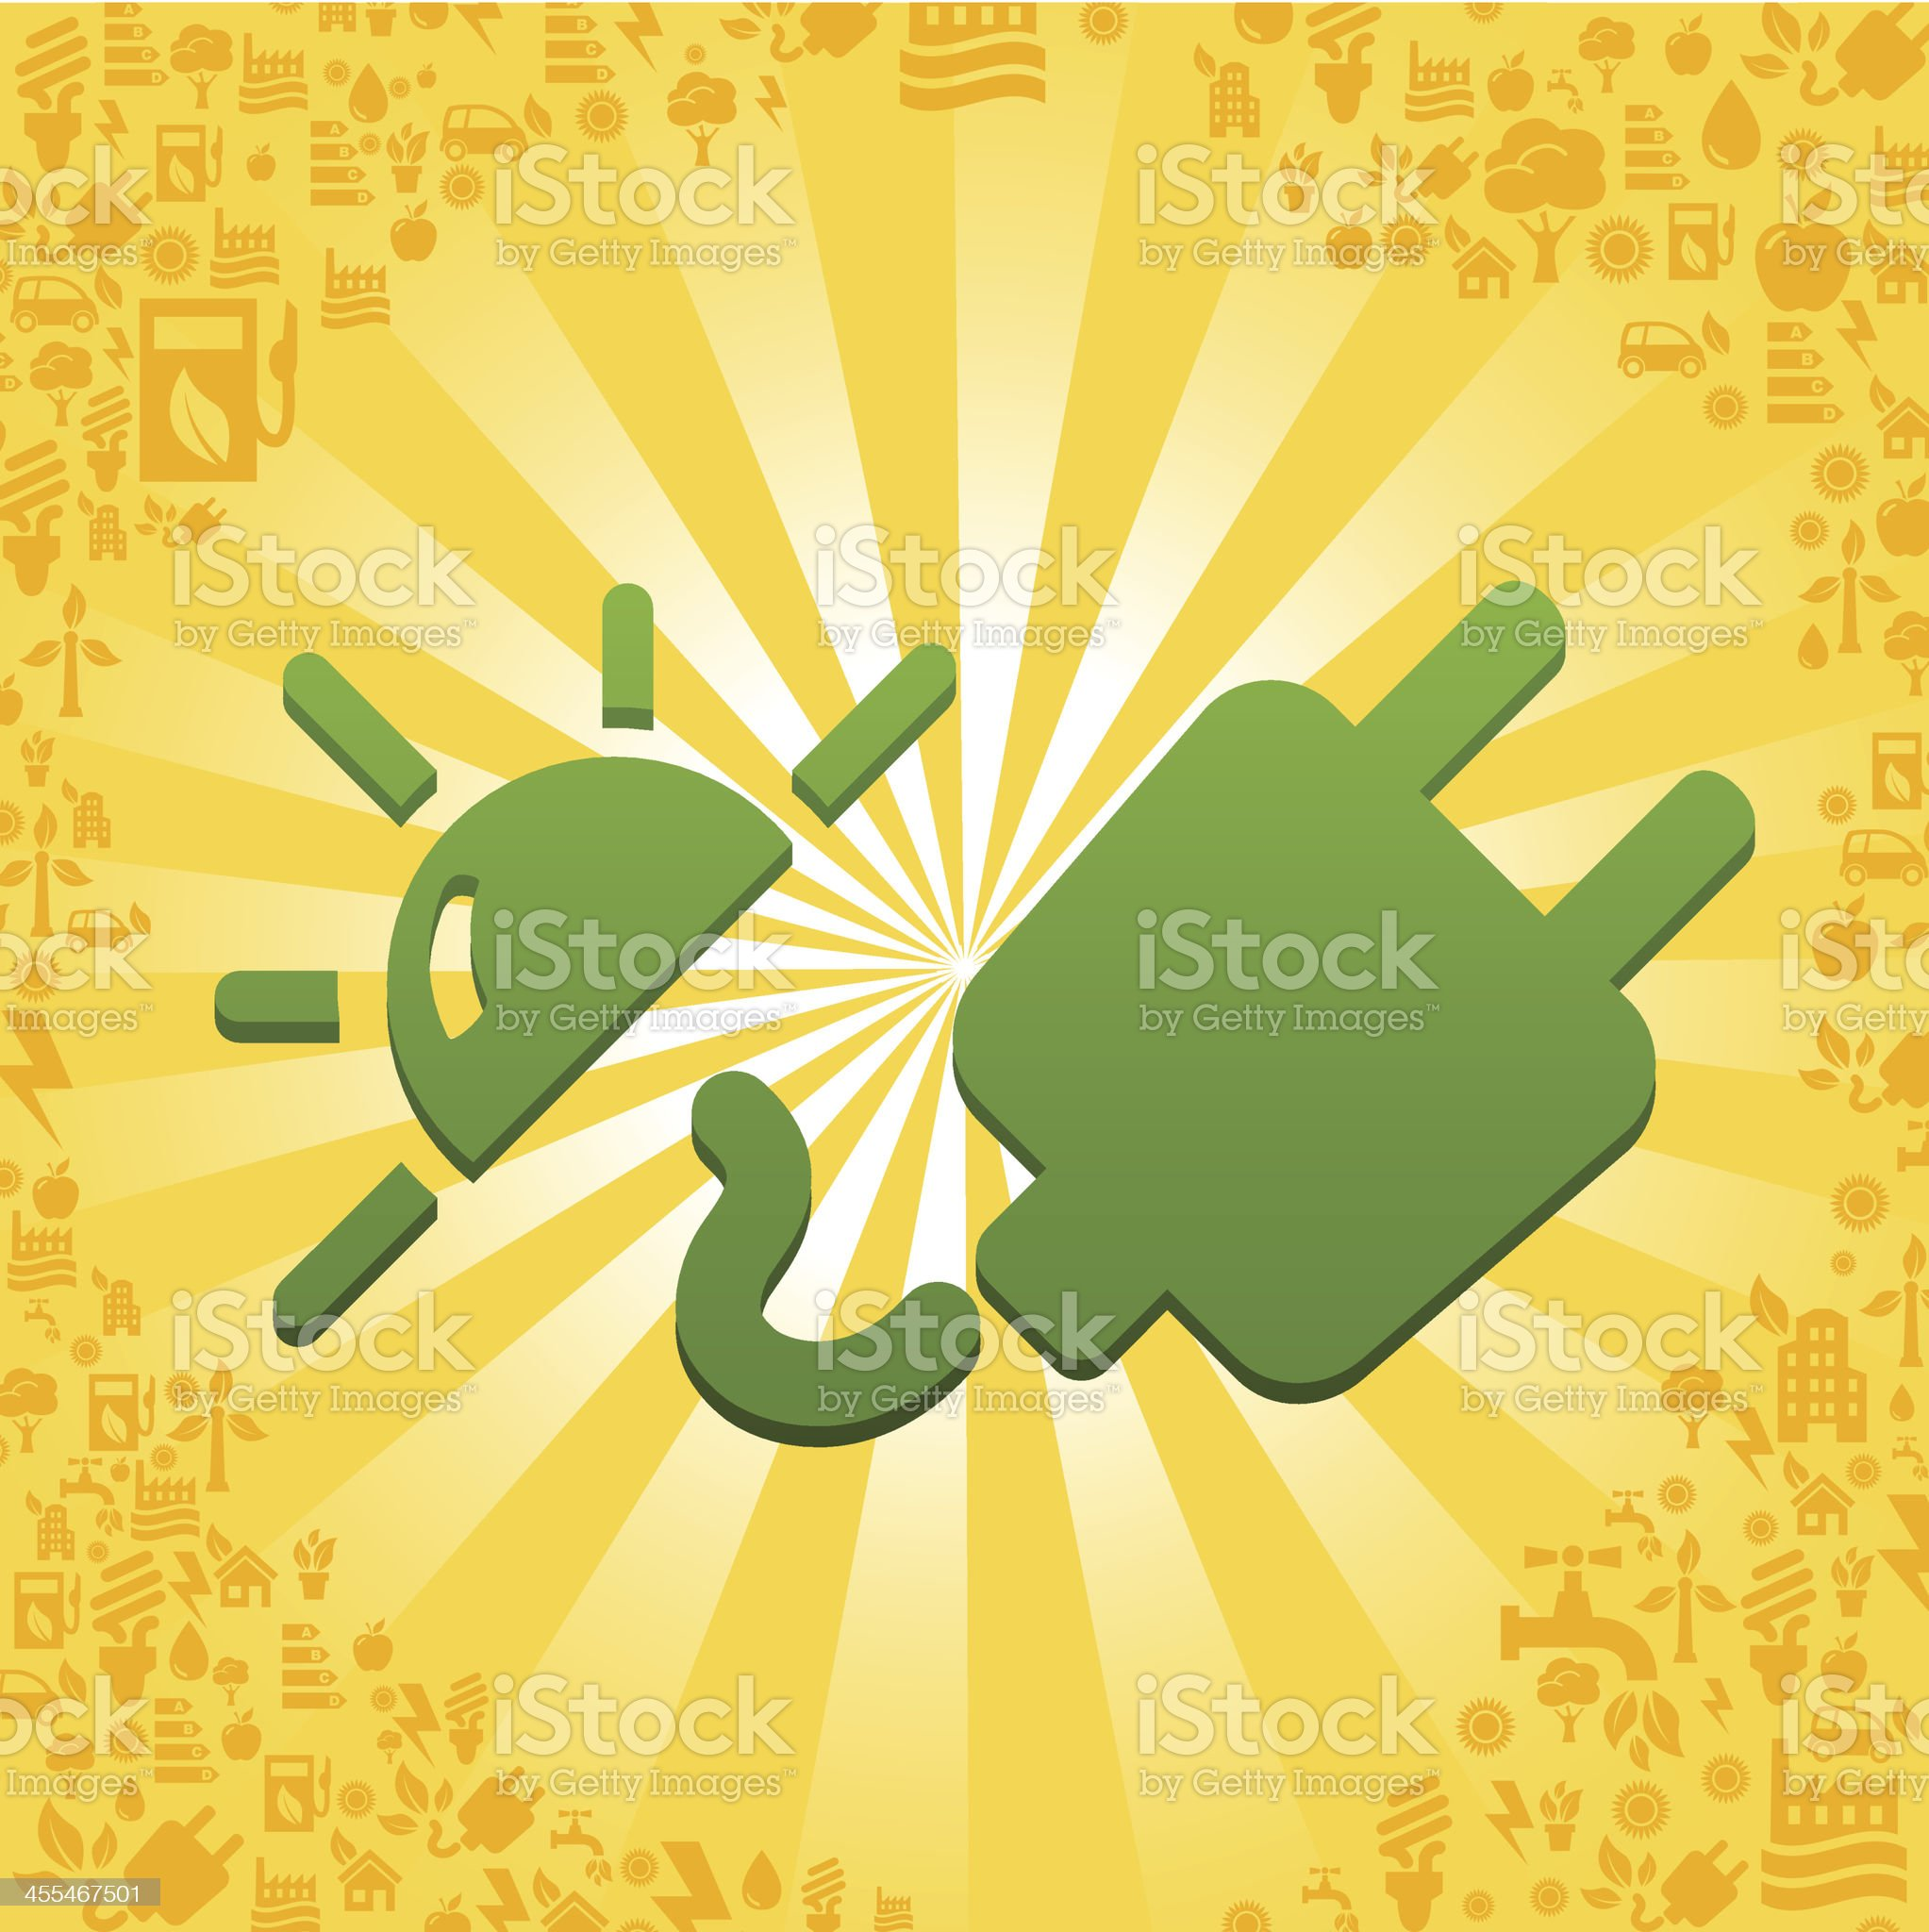 Electricity illustration with ecology icons royalty-free stock vector art